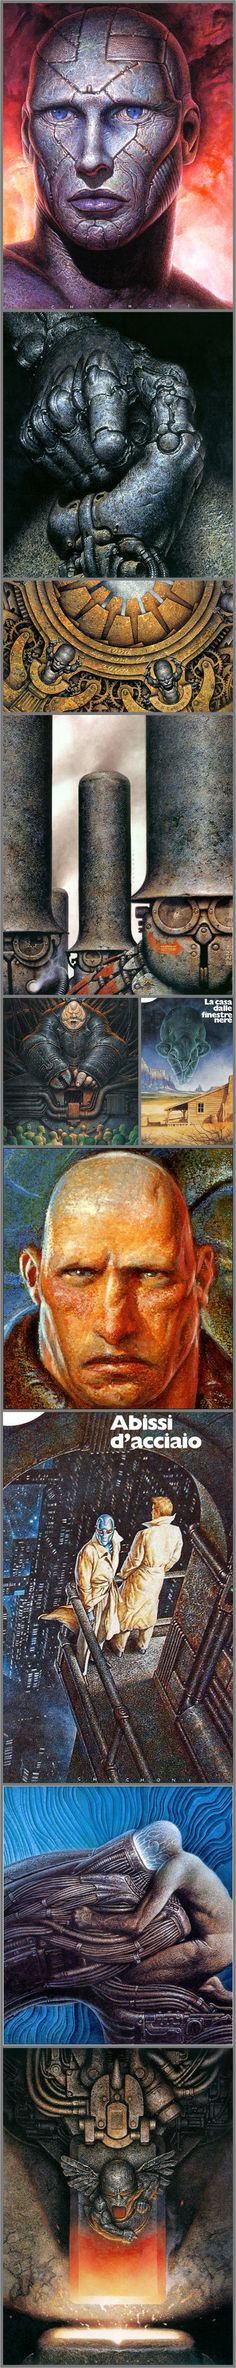 Oscar Chichoni -- illustrations from covers of Italian translations of 1980's & 90's science fiction (click through for details plus more art)